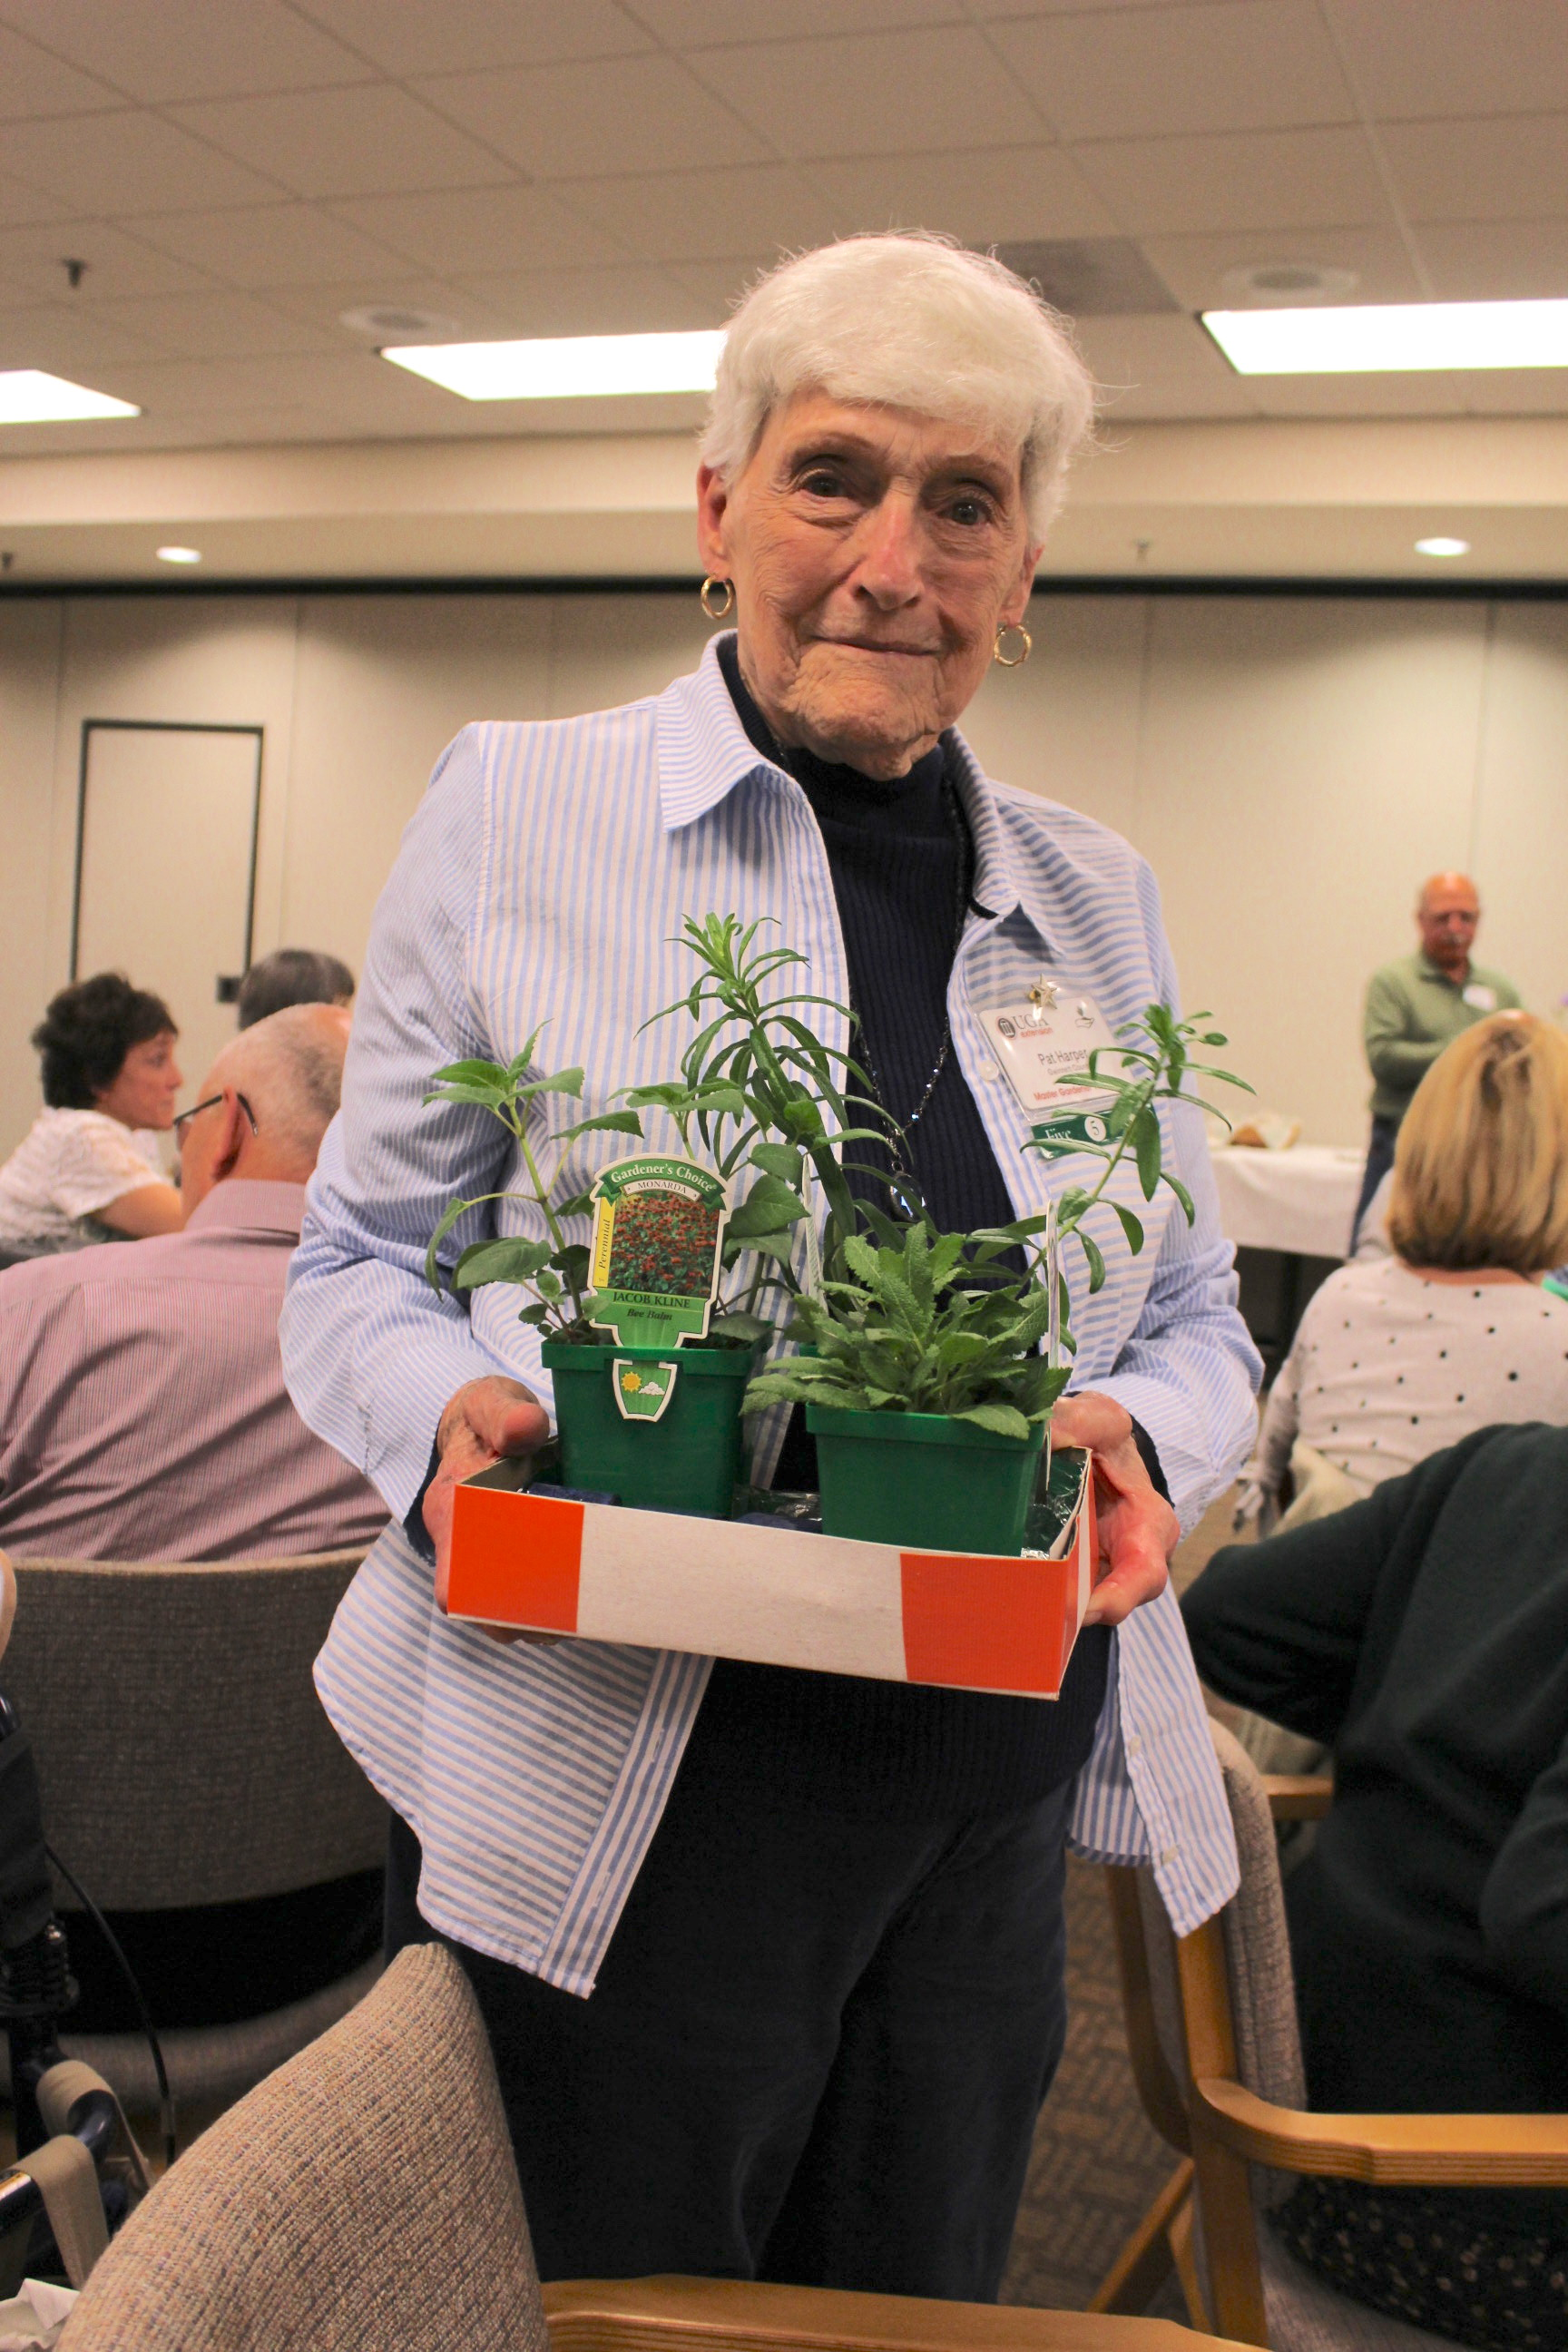 Raffle Winner #1 takes home assortment of native plants